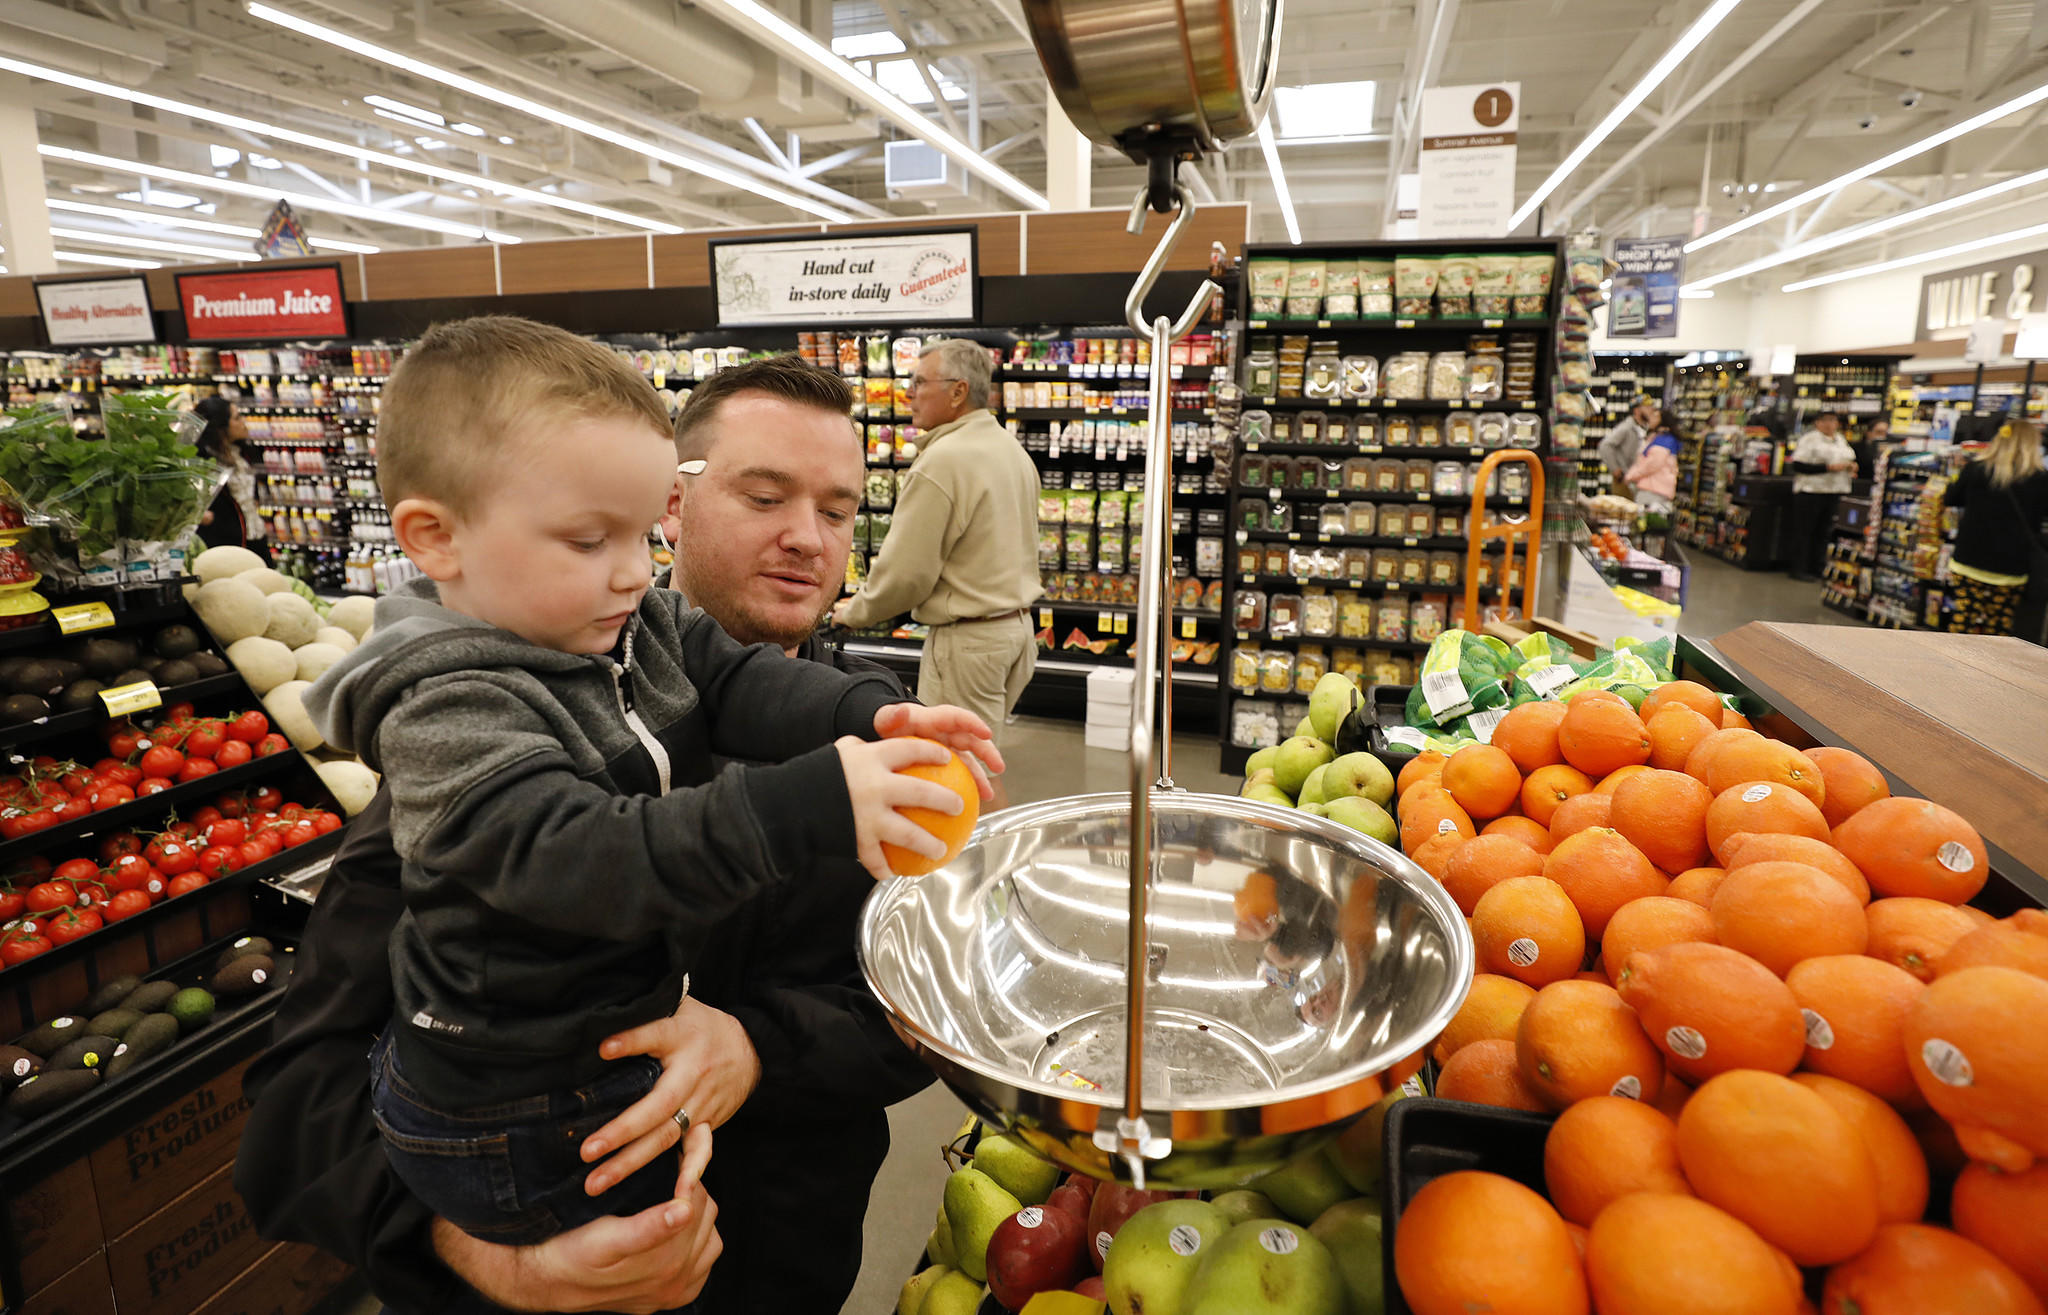 Zachary Reitz, who has vacationed on Catalina Island since he was a child, holds his 3-year-old son Jace Reitz as he weighs fruit at the new Vons Avalon Market on Catalina Island. (Credit: Al Seib / Los Angeles Times)